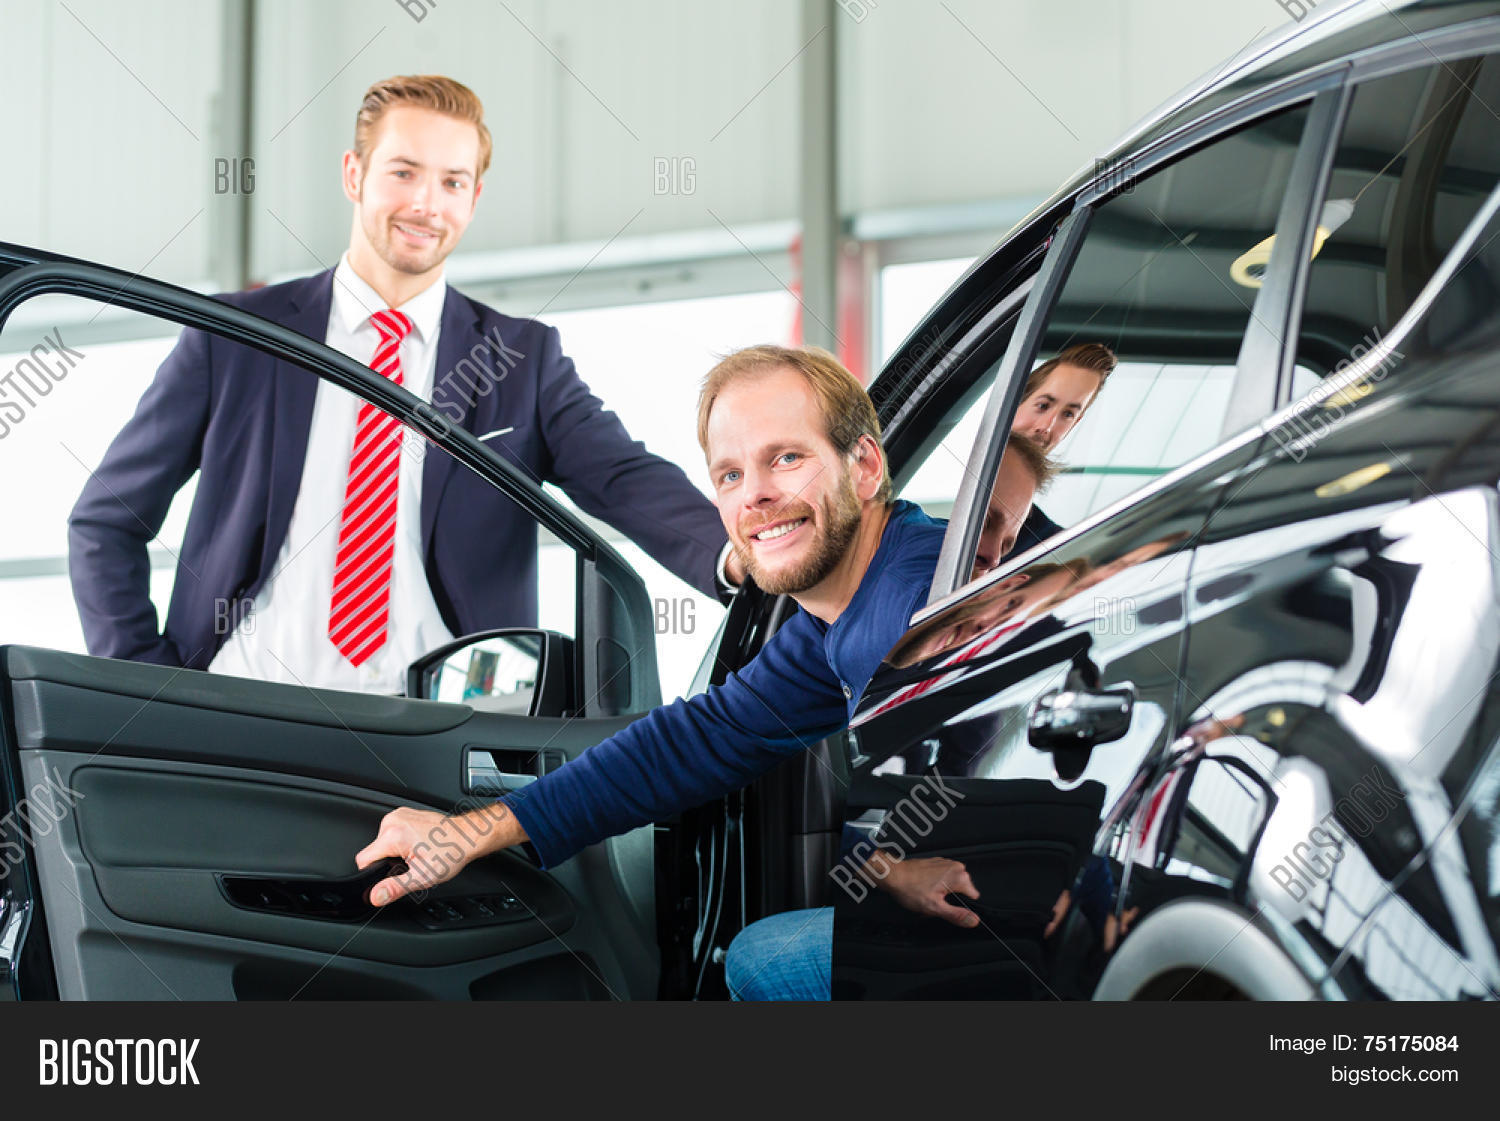 Seller Car Salesman Image Photo Free Trial Bigstock